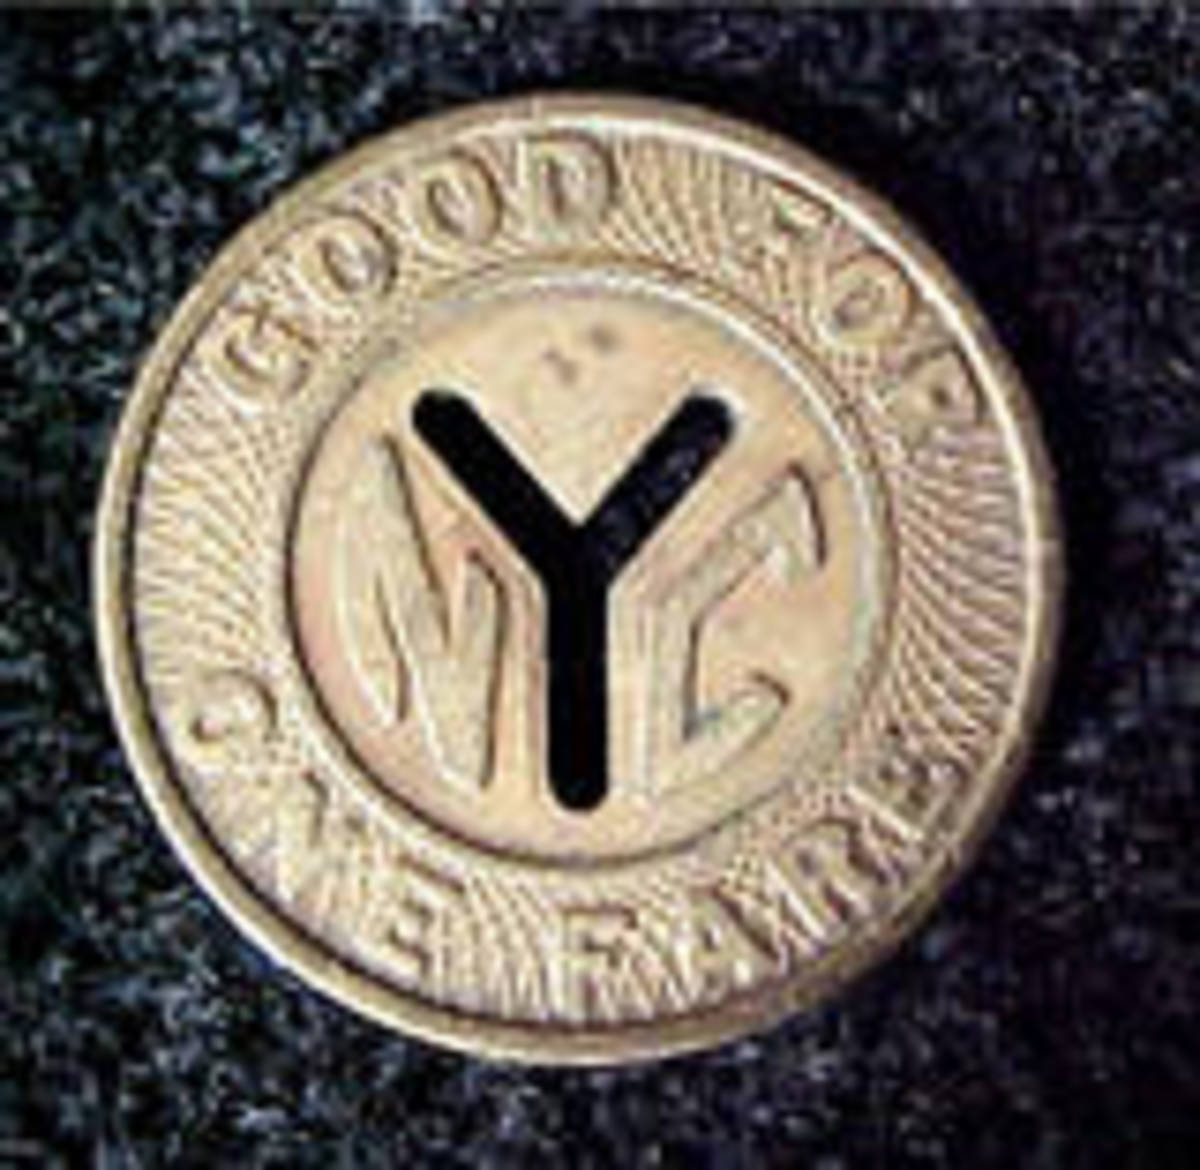 This is an example of the larger size of NYC's subway transit coin.